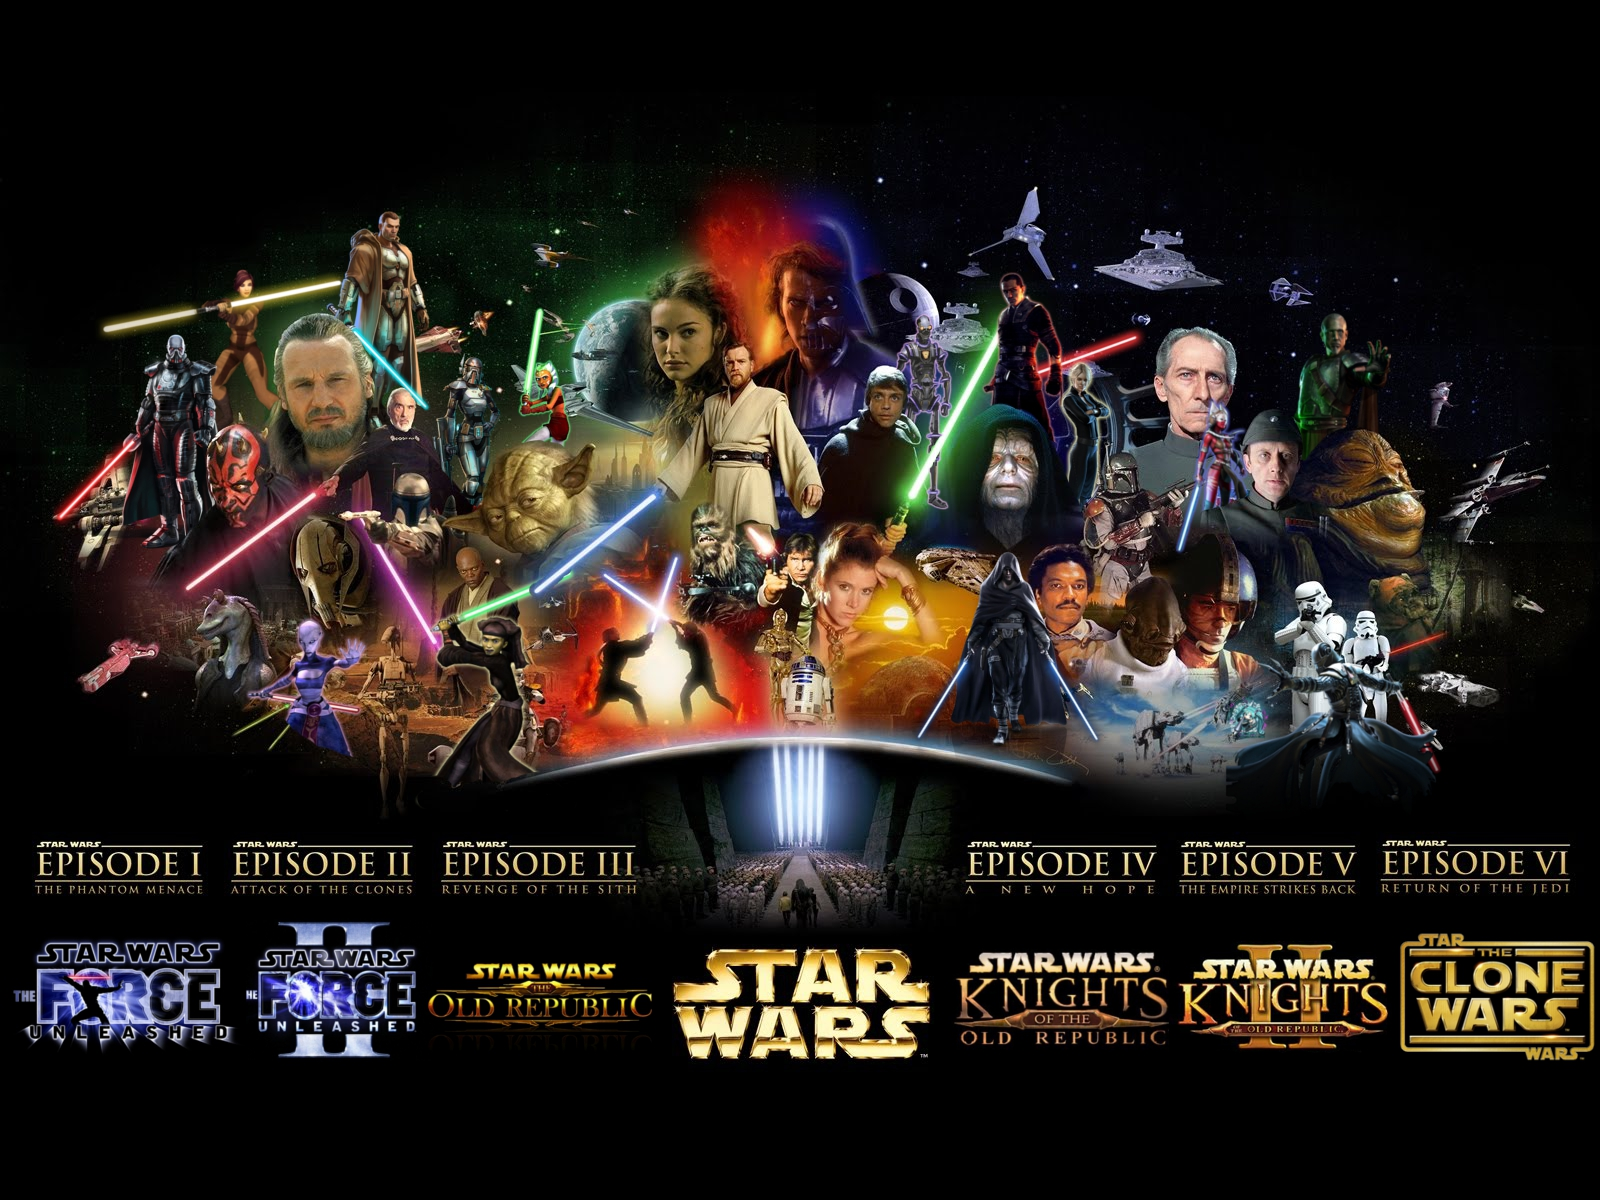 Star Wars Wallpaper Saga 1600x1200 Wallpaper Teahub Io